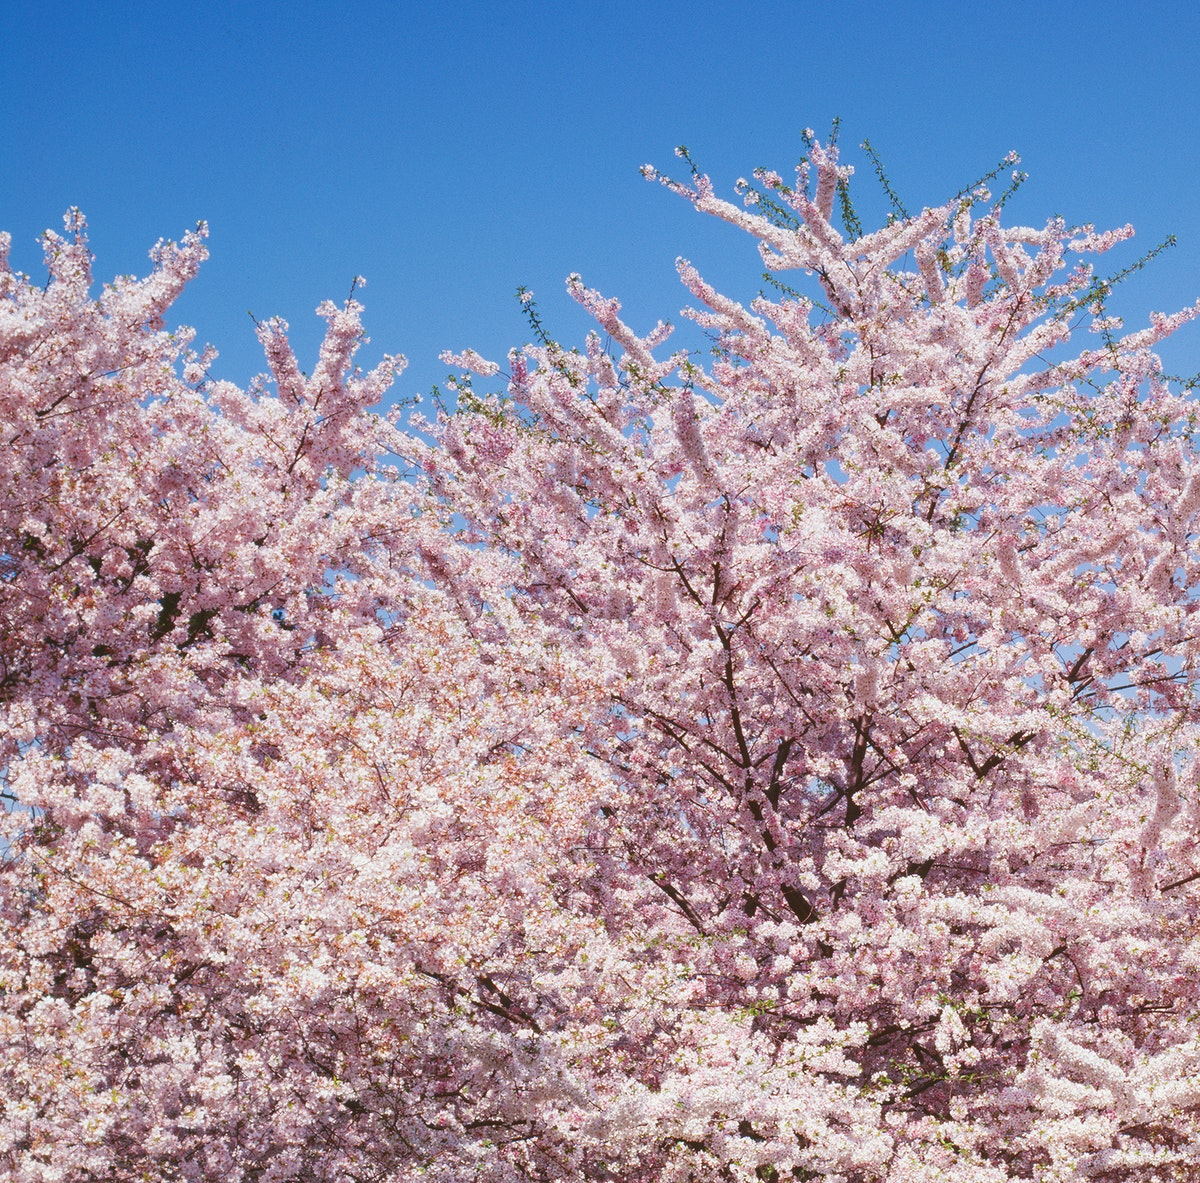 Cherry blossoms in front of the Washington Monument in Washington, D.C. Original image from Carol M. Highsmith's…